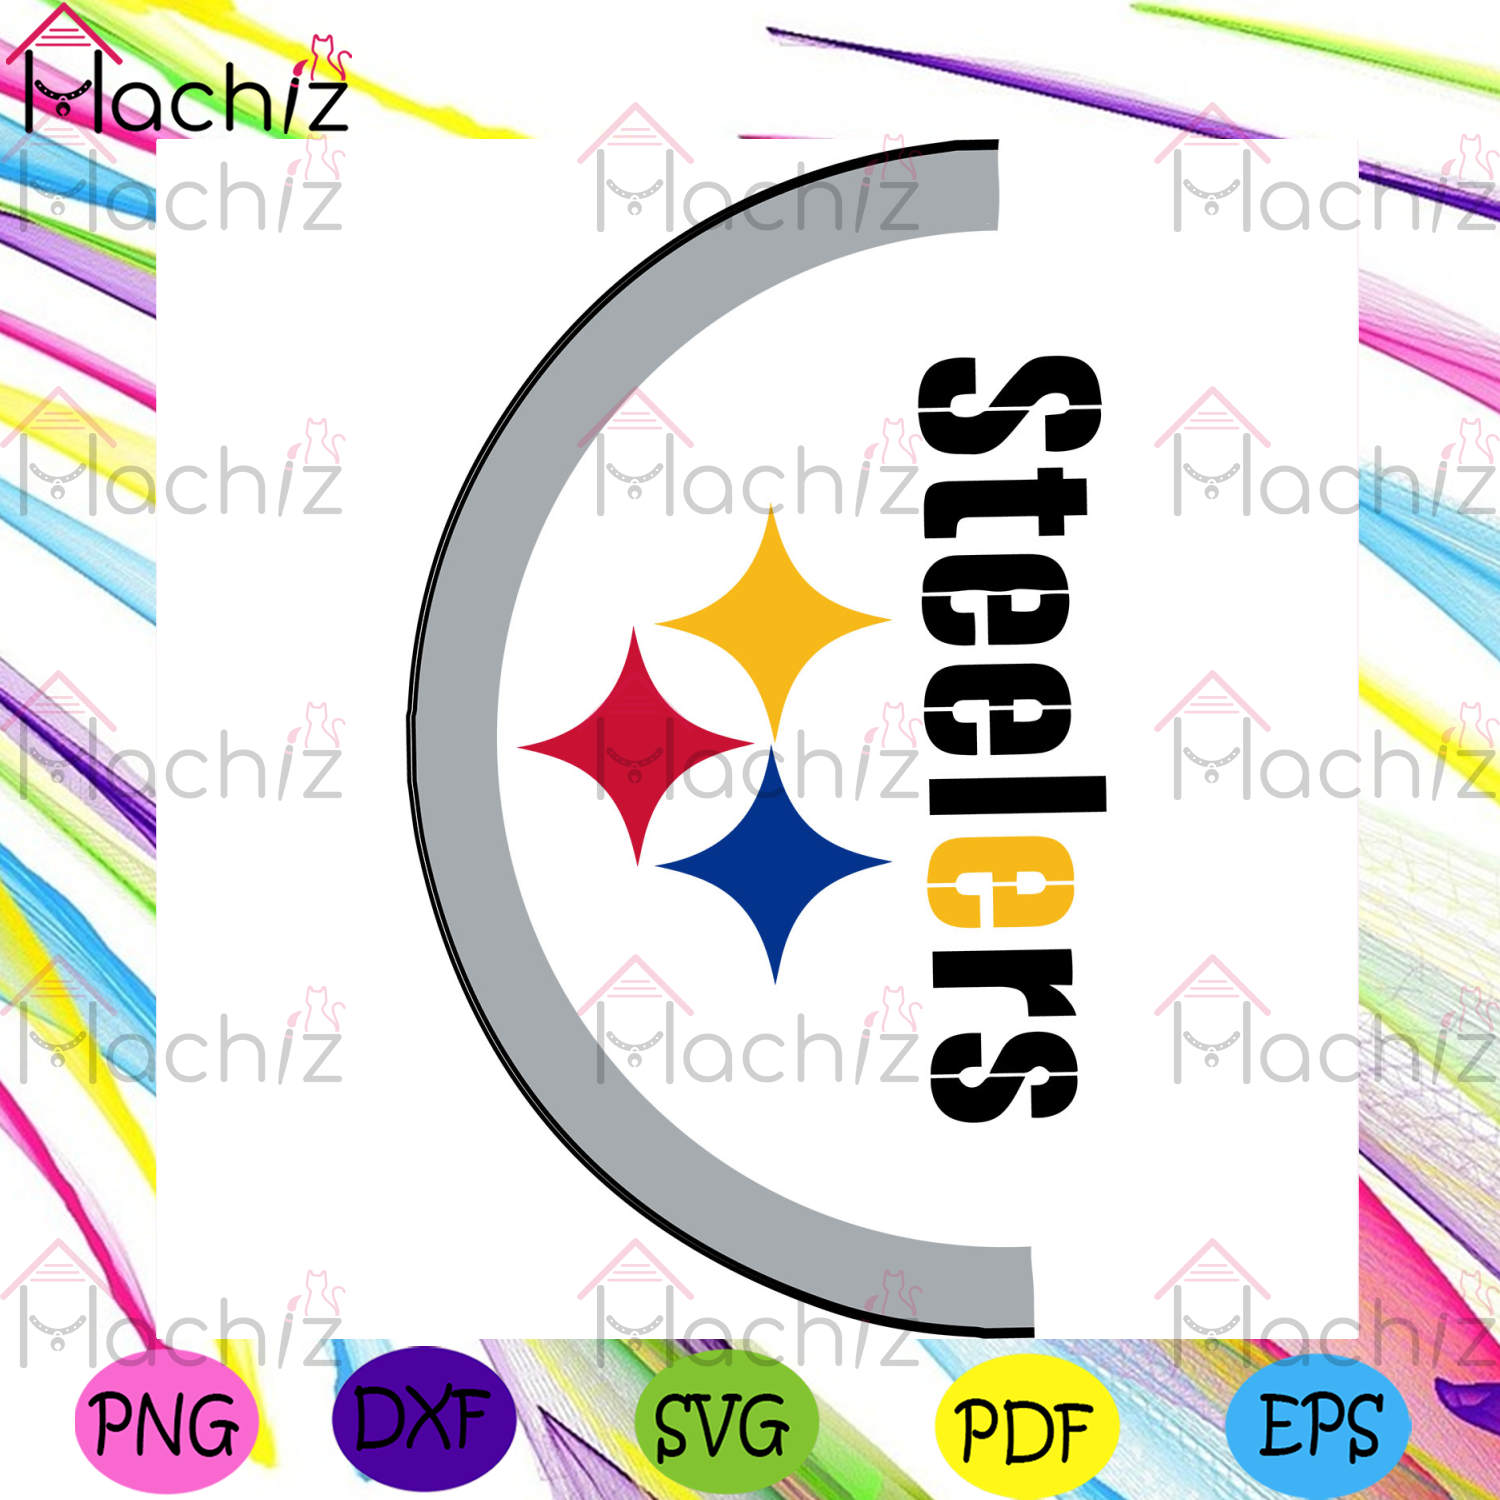 Pittsburgh Steelers SVG, Sport Svg, Steelers SVG, Steelers Football Svg, Pittsburgh Steelers Logo Svg, Pittsburgh Steelers Fans Svg, Sport Event Svg, Football Svg, Football Team Svg, Football Fans Svg, NFL Svg, NFL Fans Svg, NFL Logo Svg,